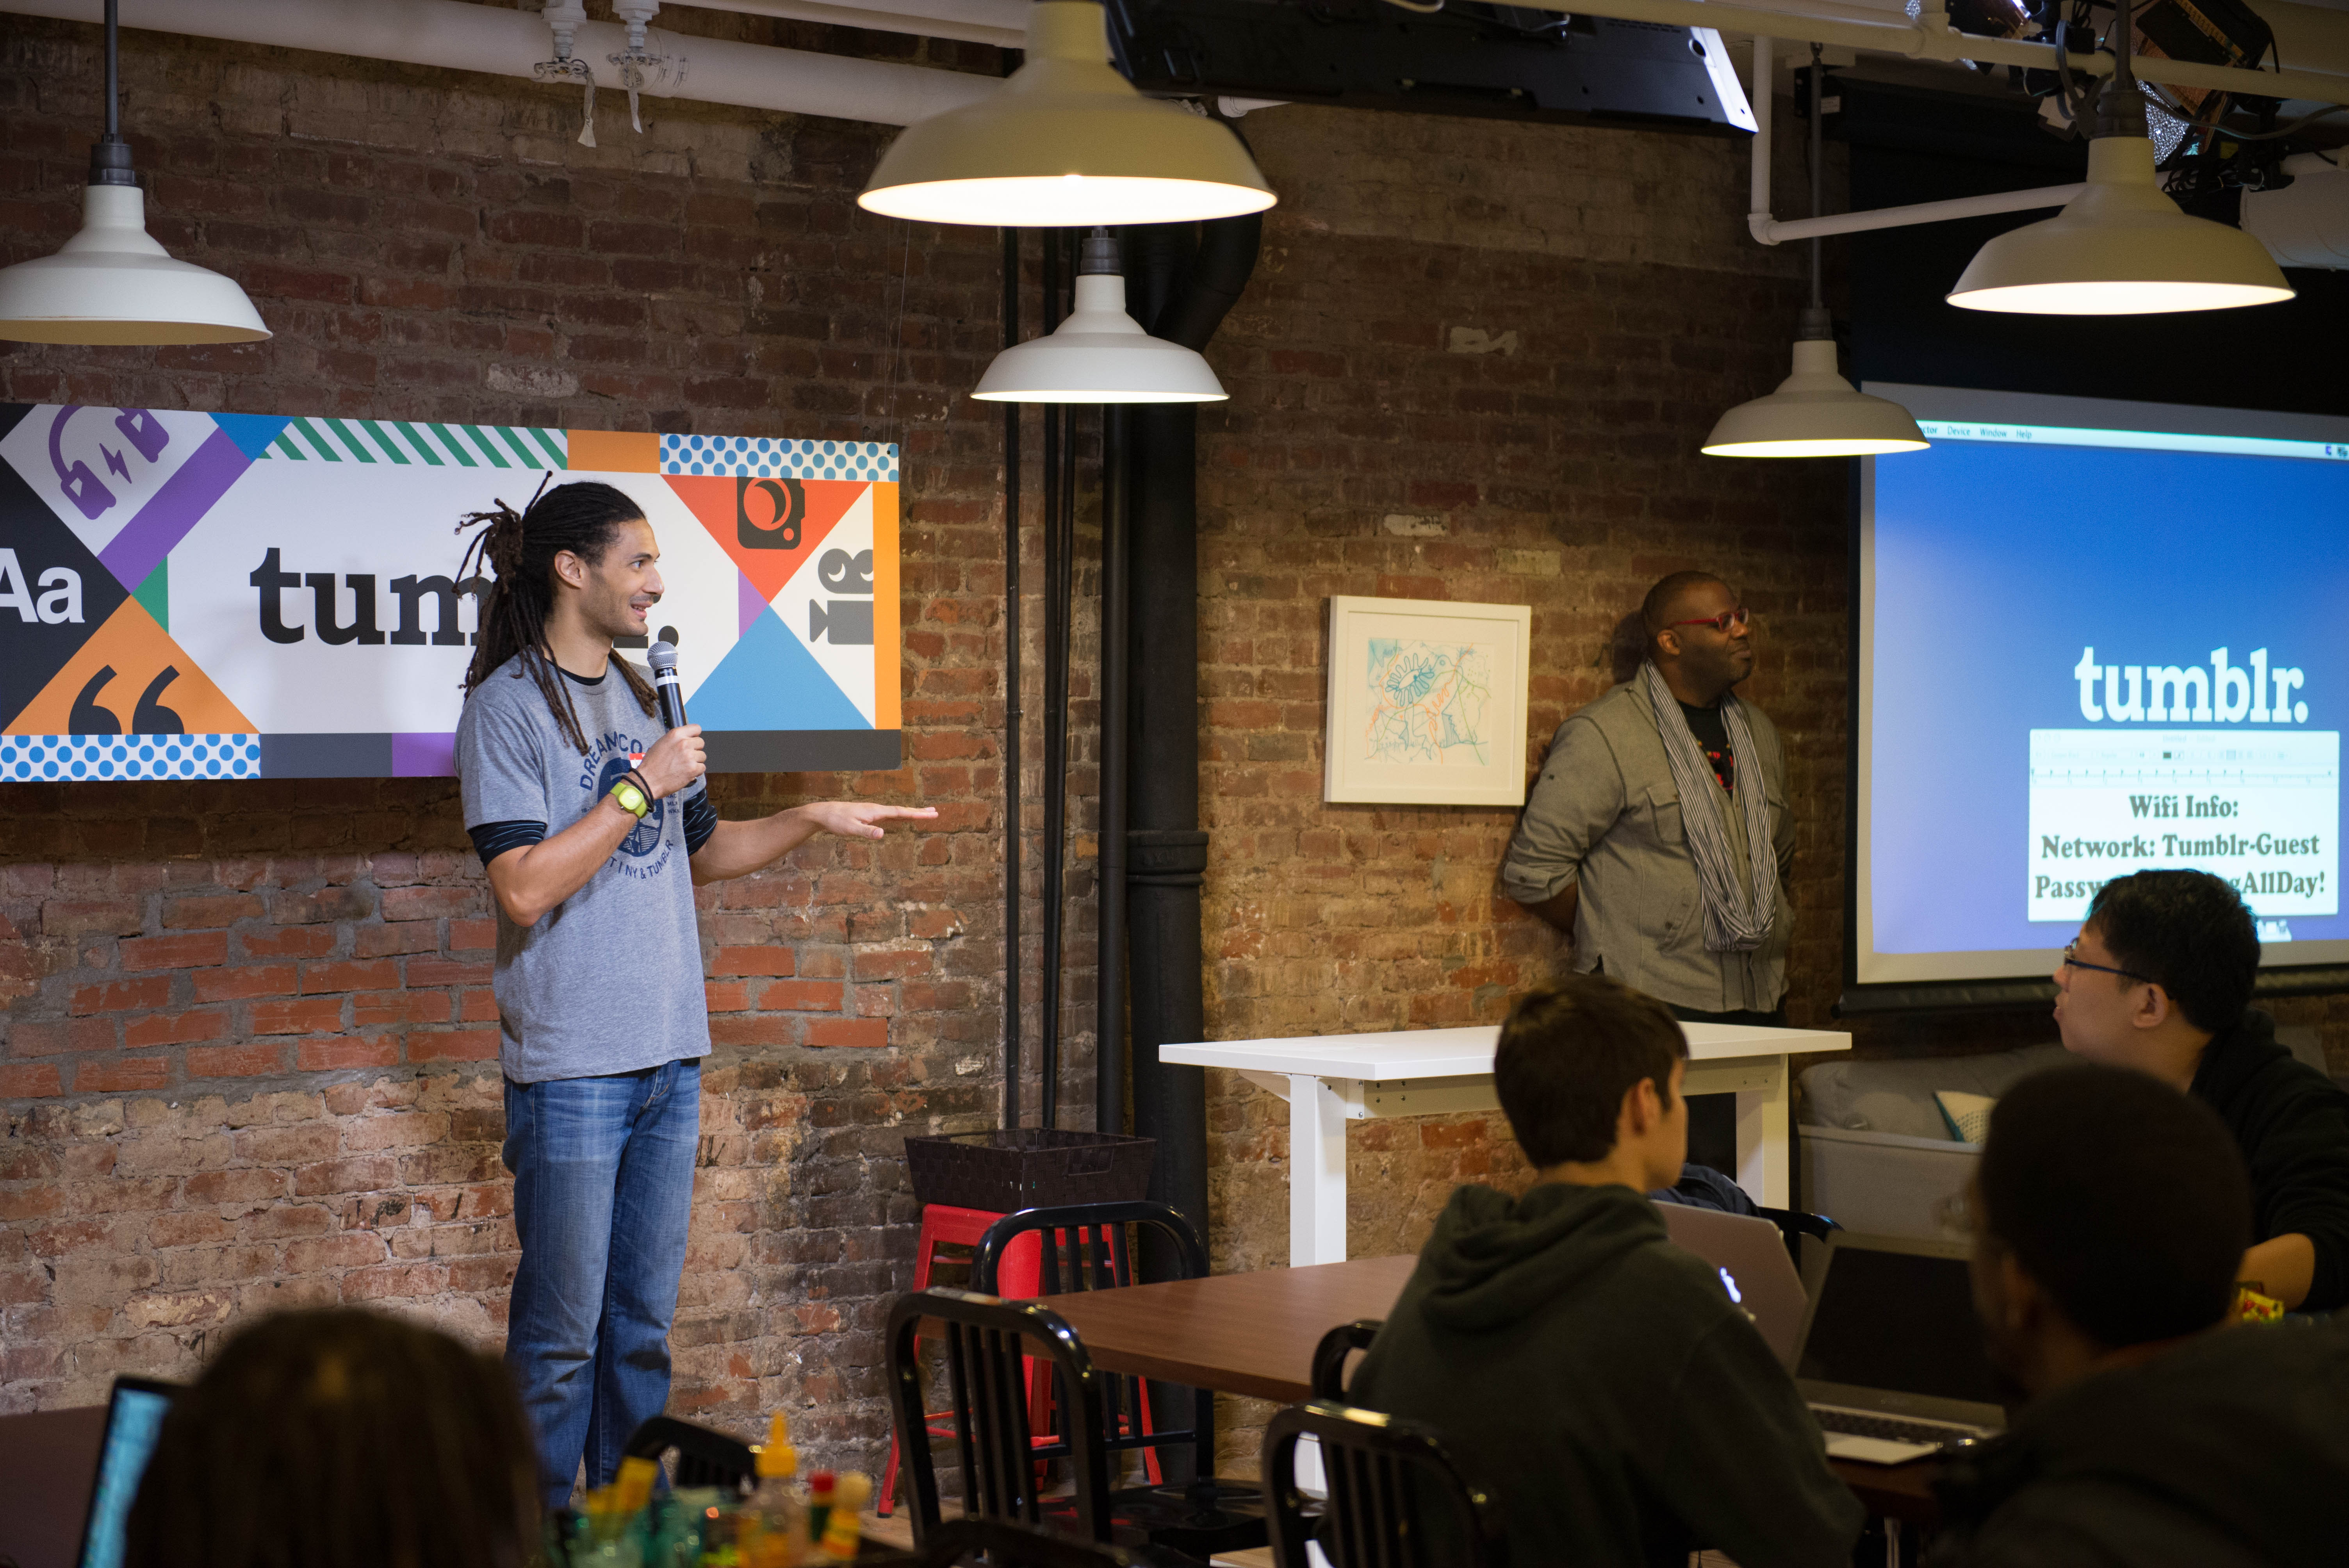 MLK Dream Code organizer Kyle Wanamaker addresses hackers at Tumblr headquarters (Image: Kevin Steck)